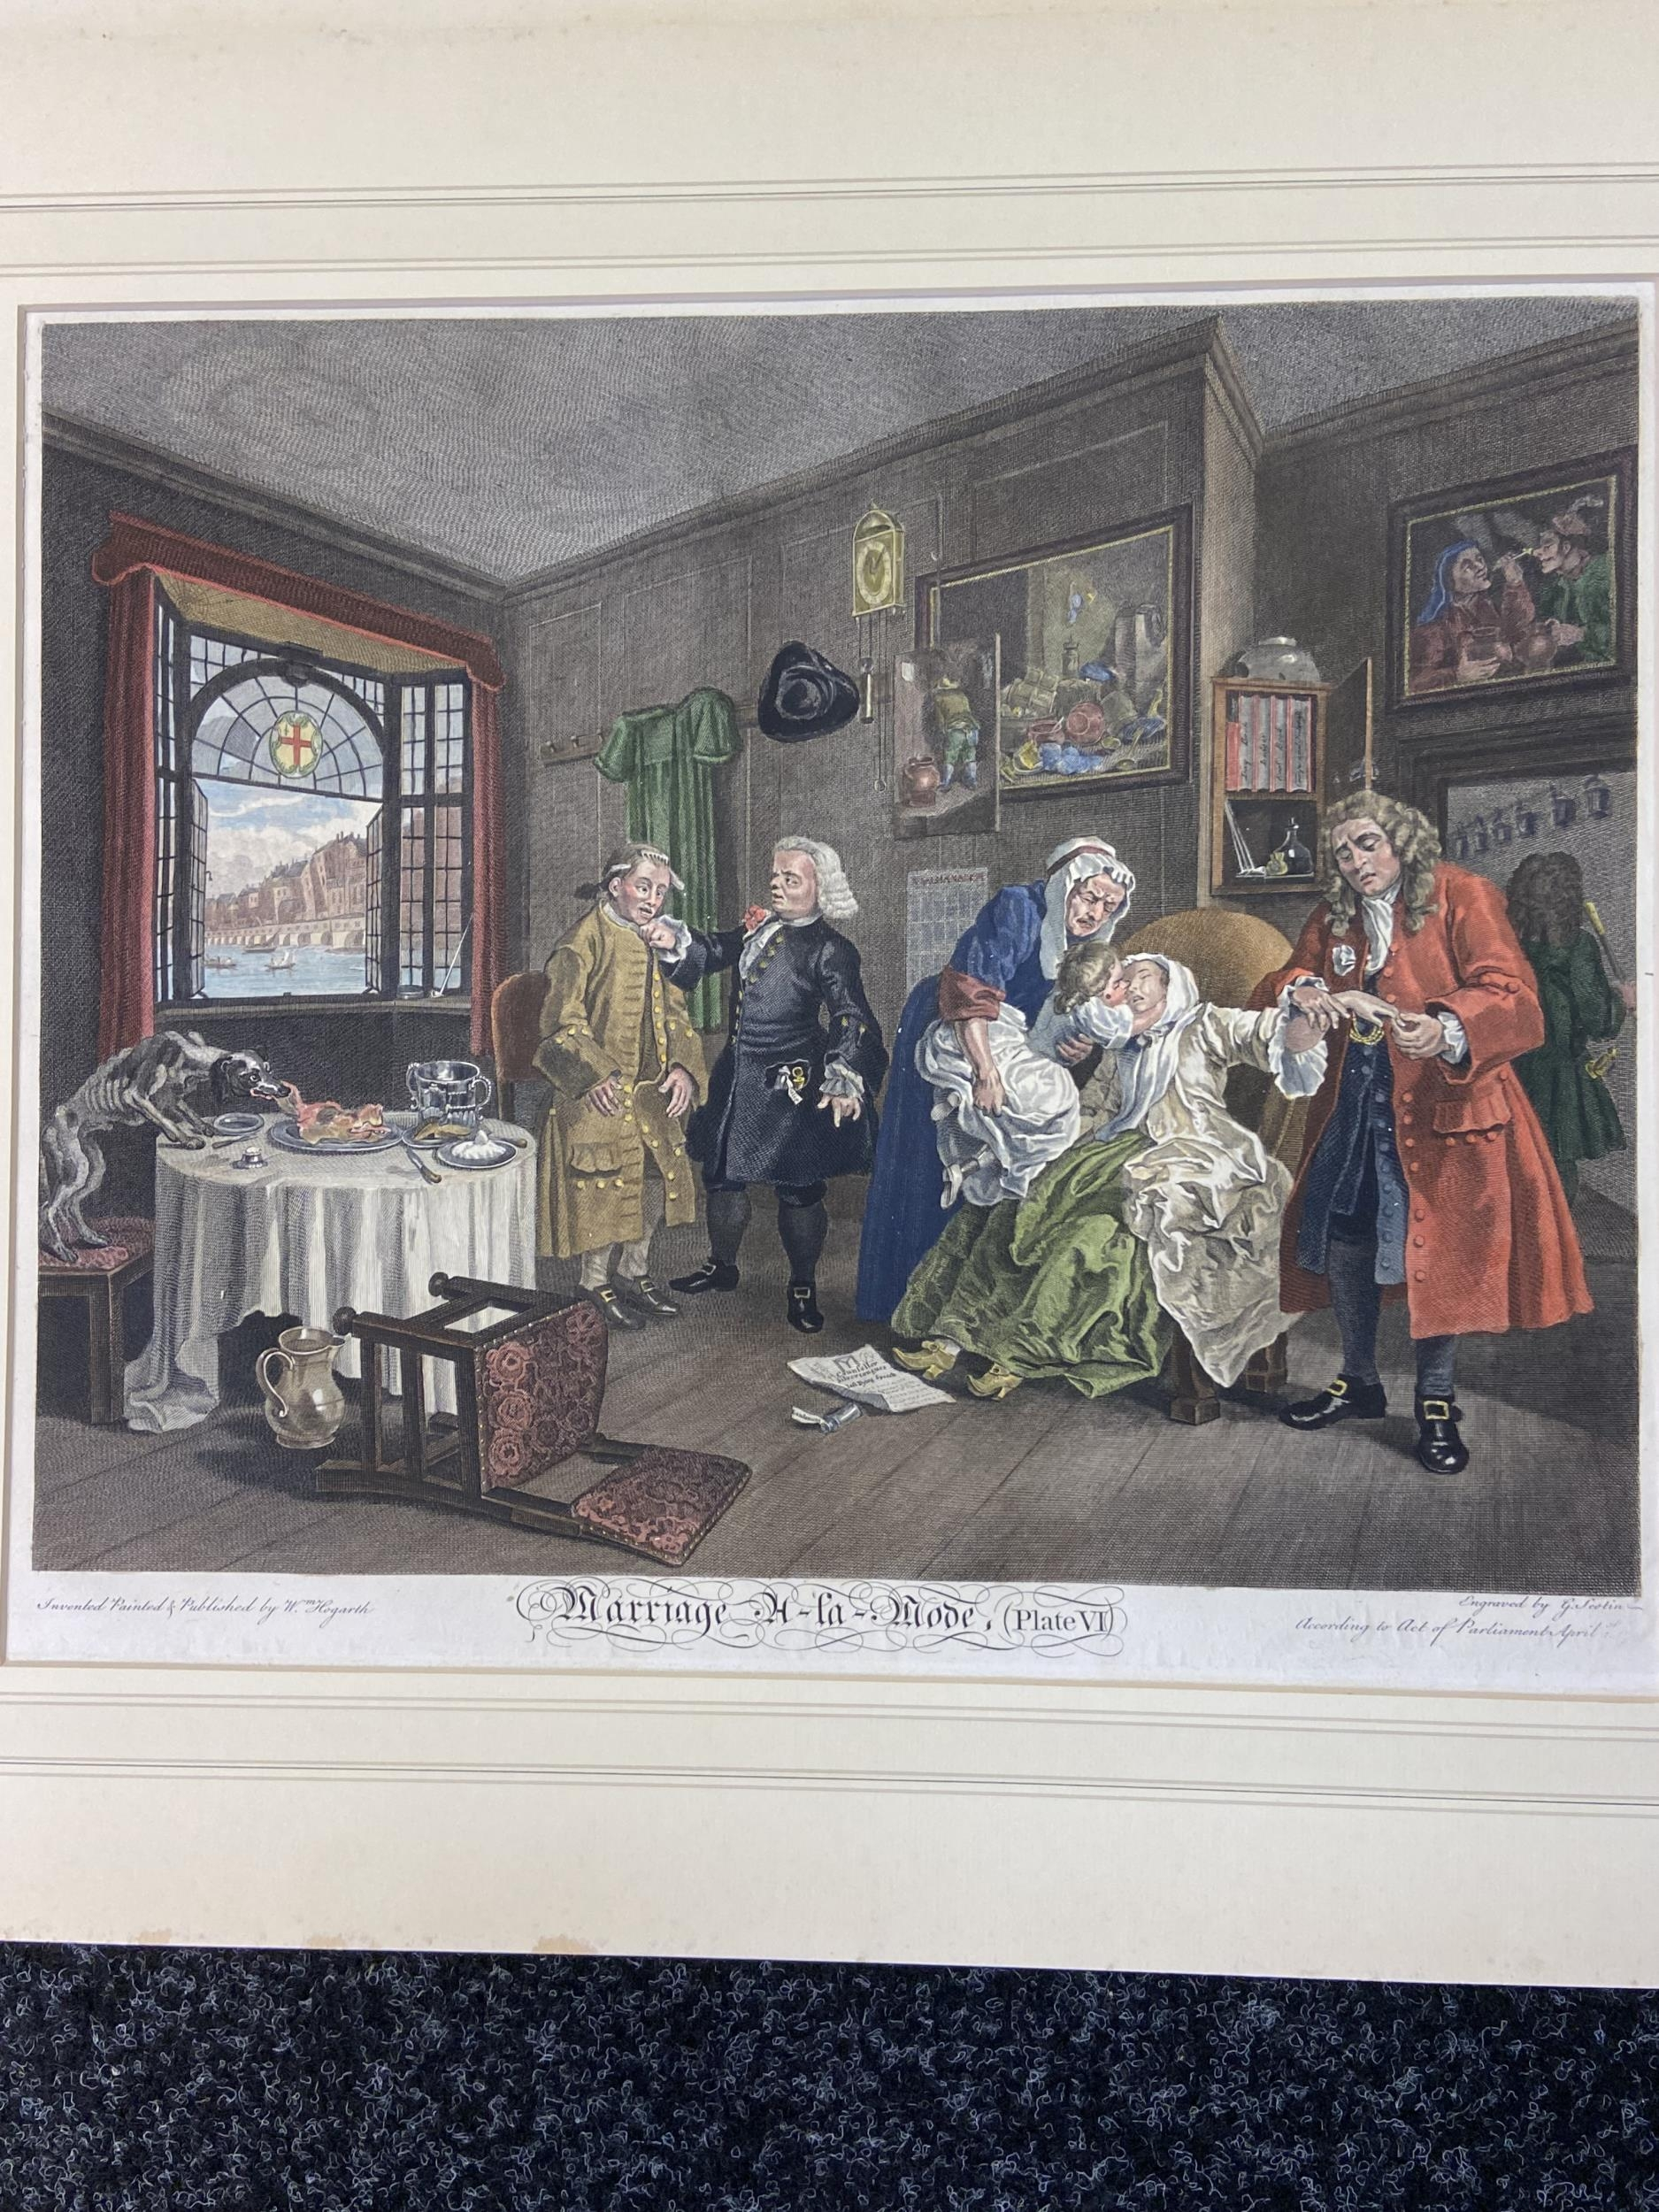 A Set of 6 18th century coloured engravings titled 'Marriage A- LA Mode' Painted, engraved and - Image 7 of 10